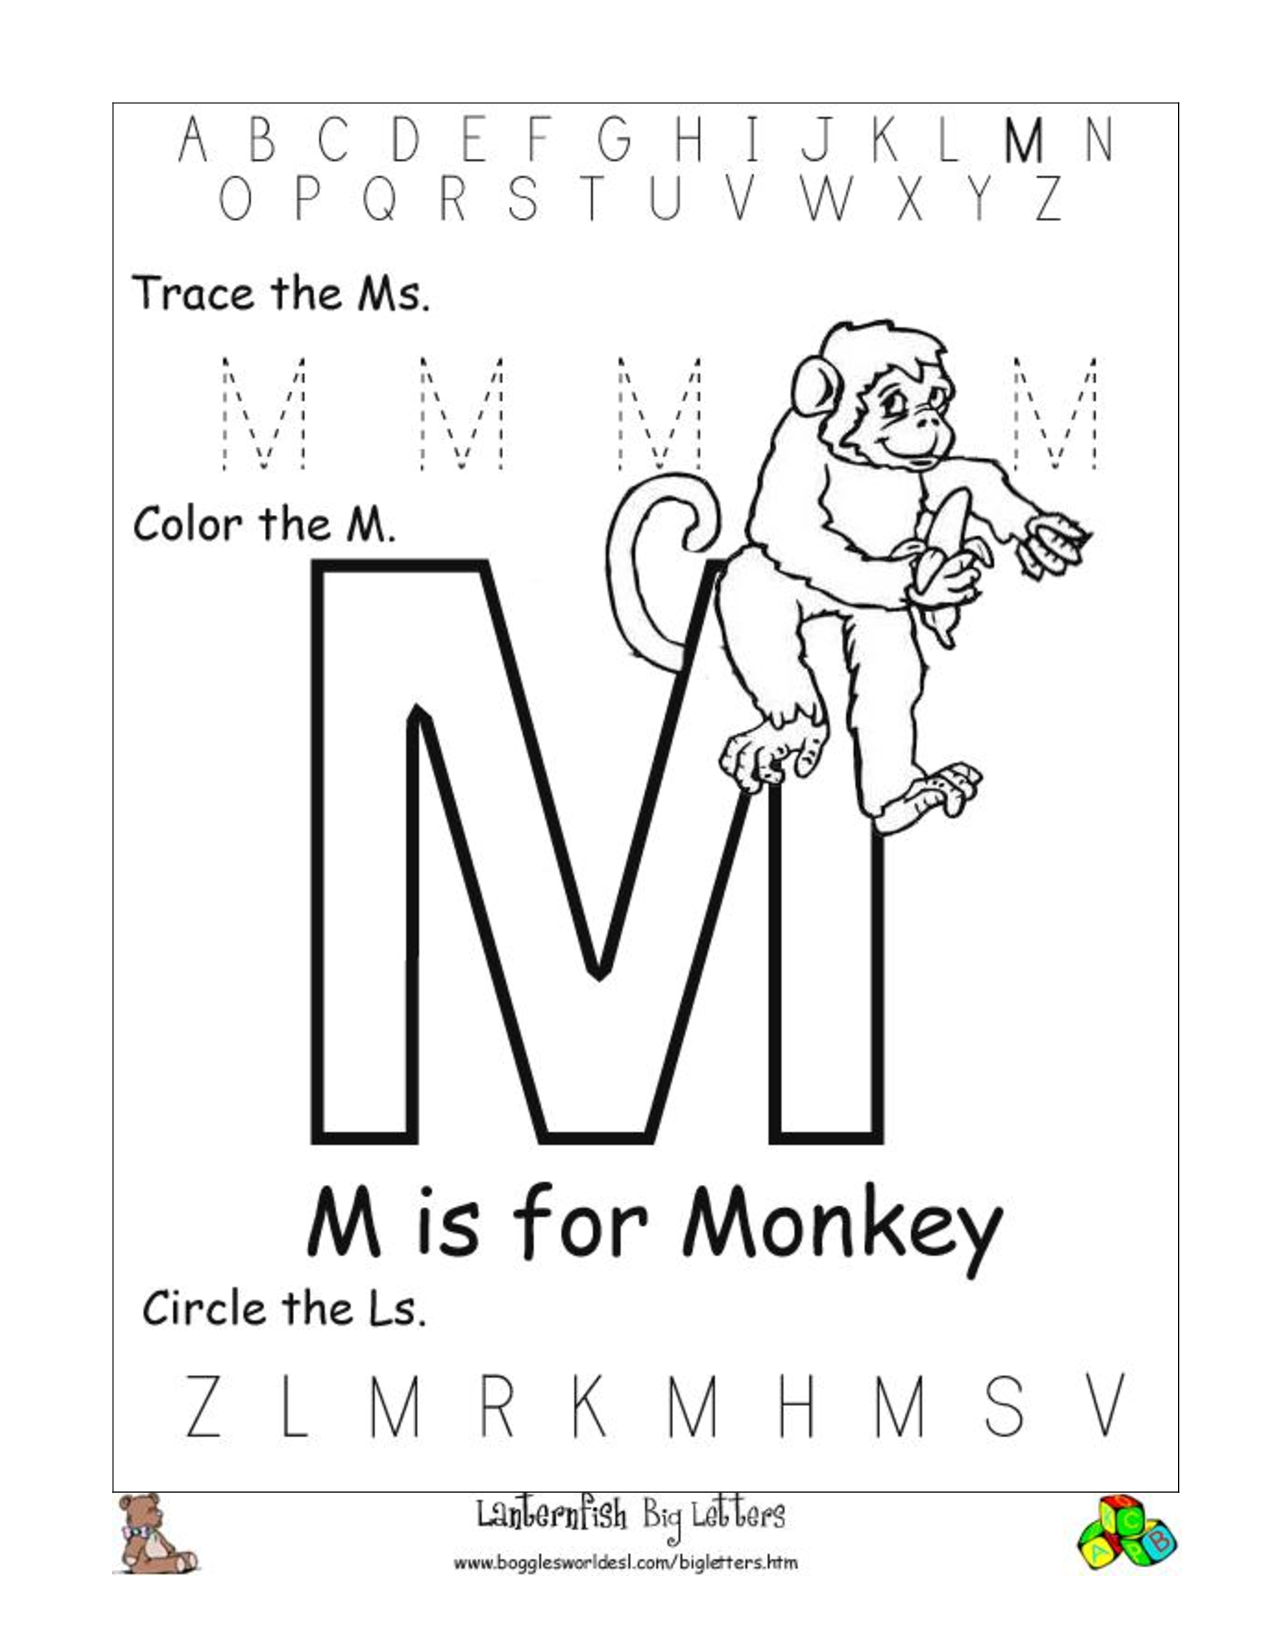 coloring printable m letter images letter m is for music coloring page free printable printable letter images coloring m